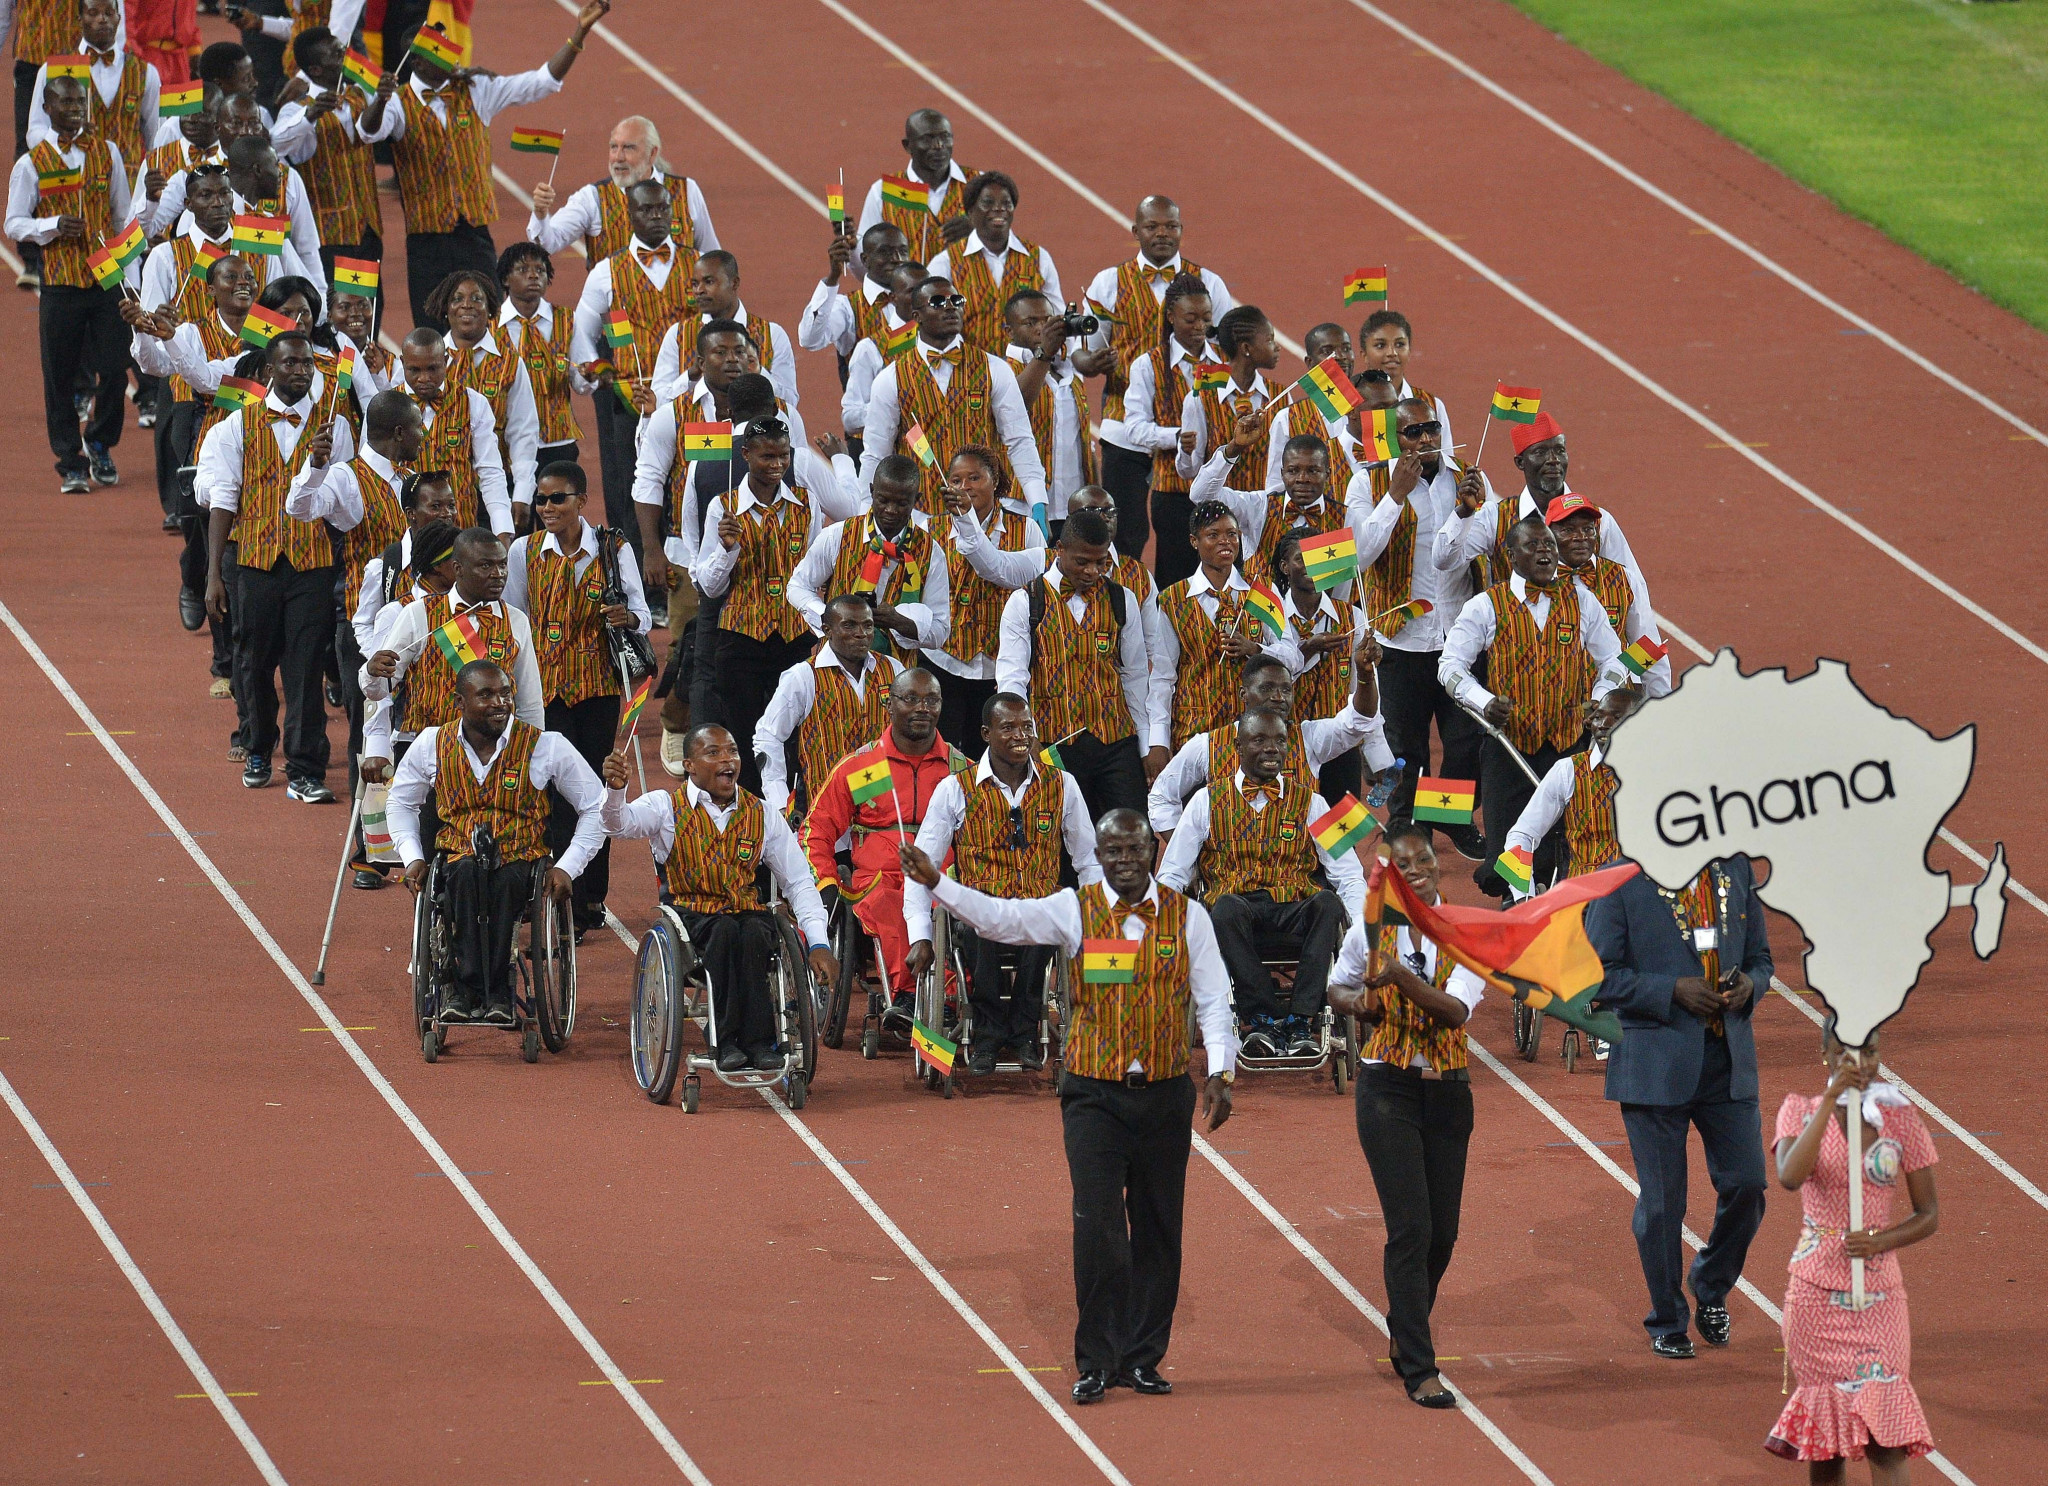 Ghana is among the countries represented at the 2019 African Games in Morocco's capital Rabat ©Getty Images